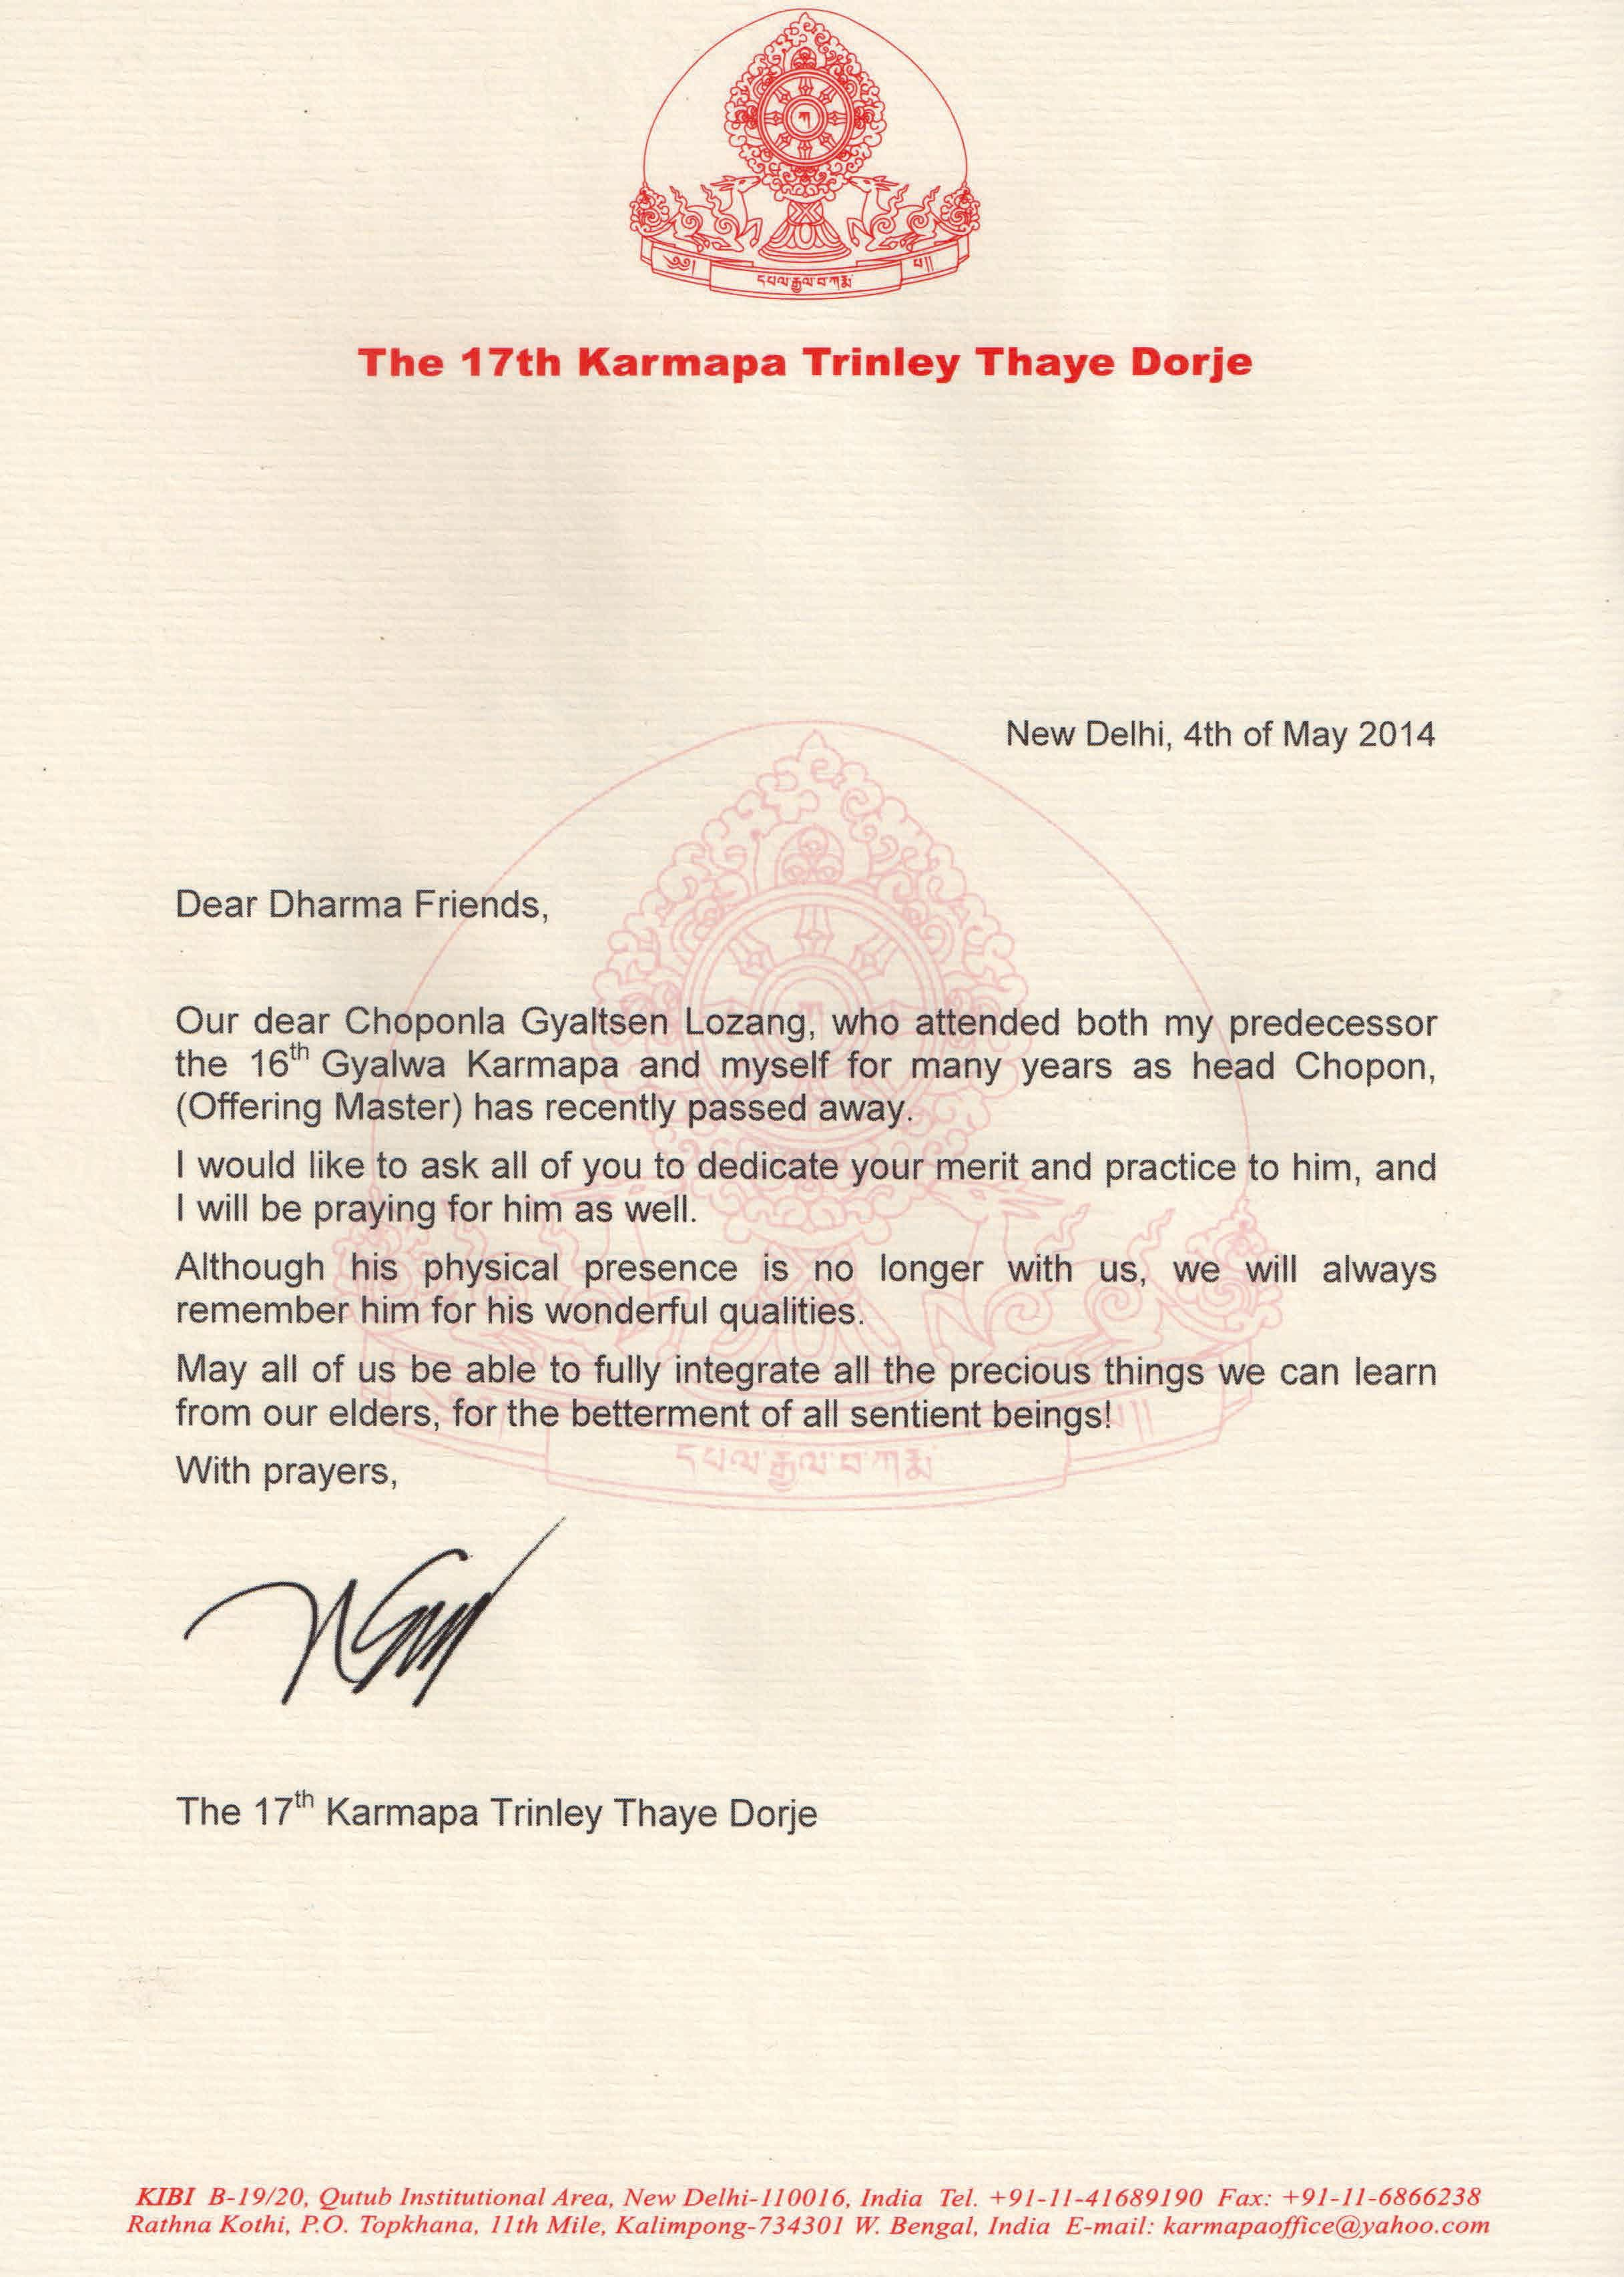 Message from His Holiness Karmapa Thaye Dorje about death of Choponla Gyaltsen Lozang